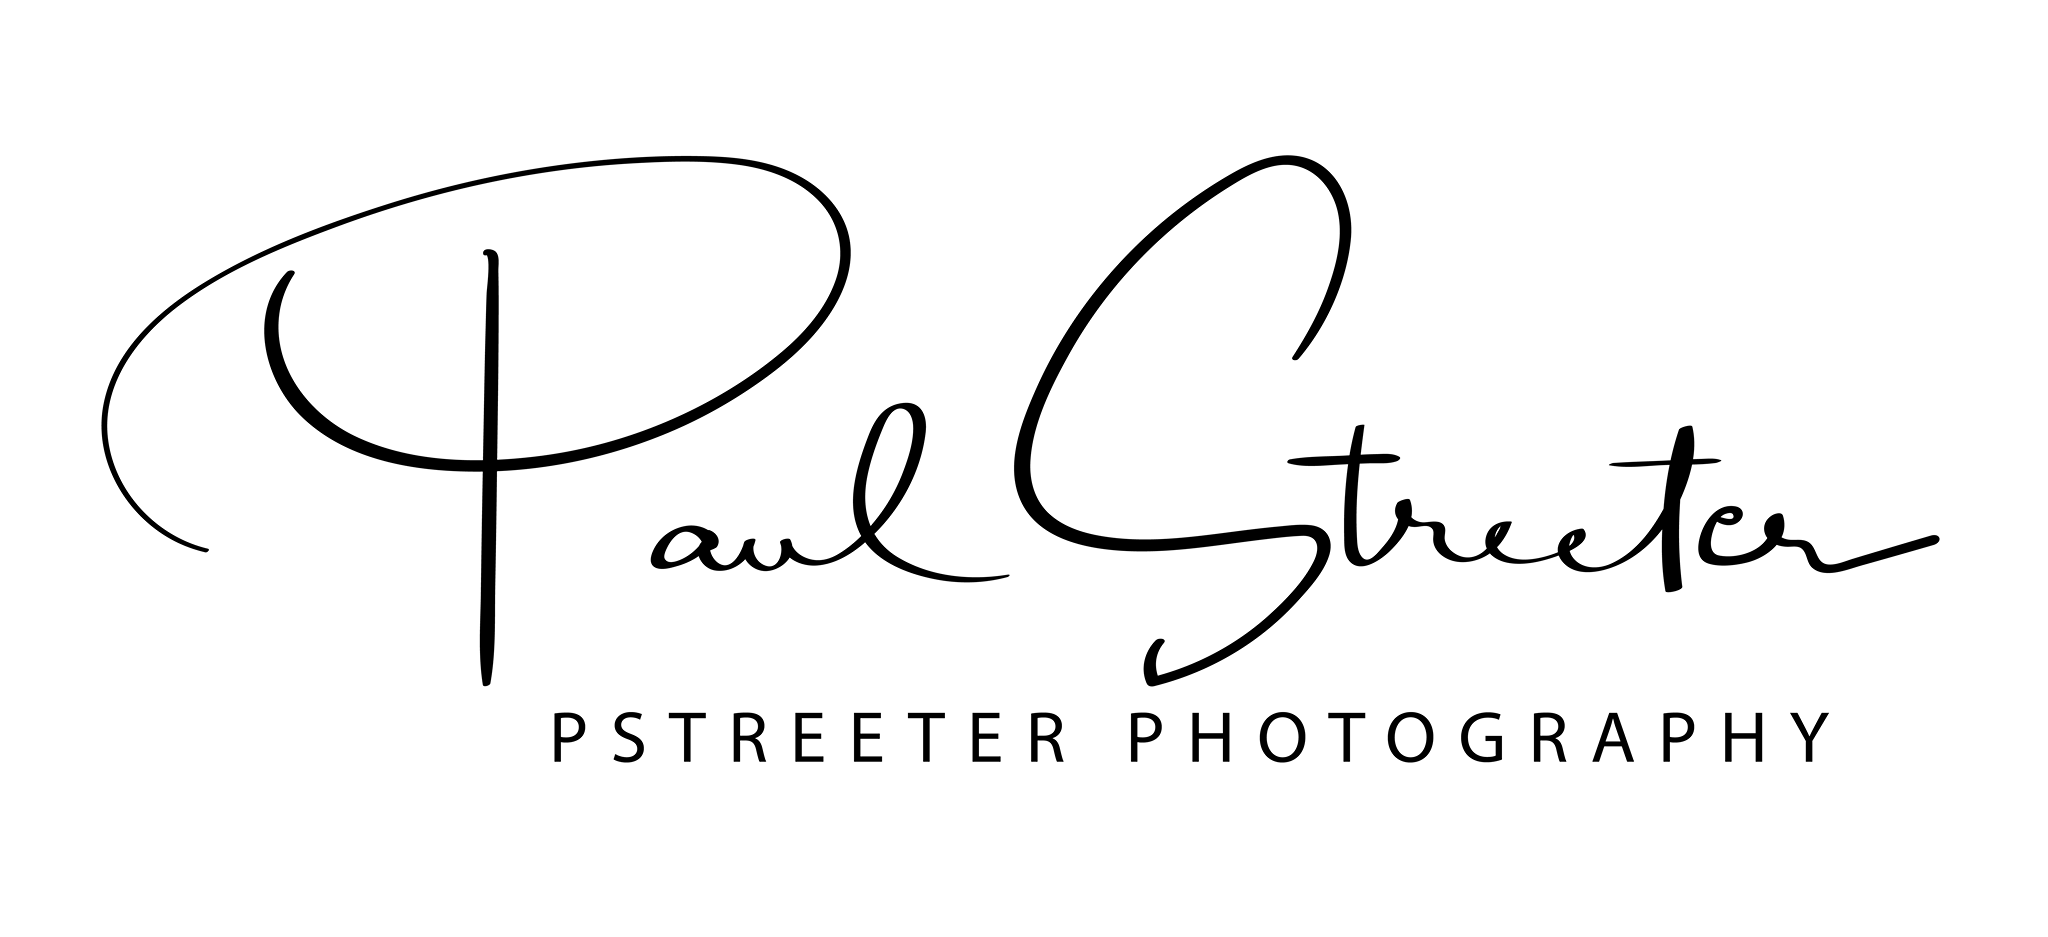 Pstreeter-Photography